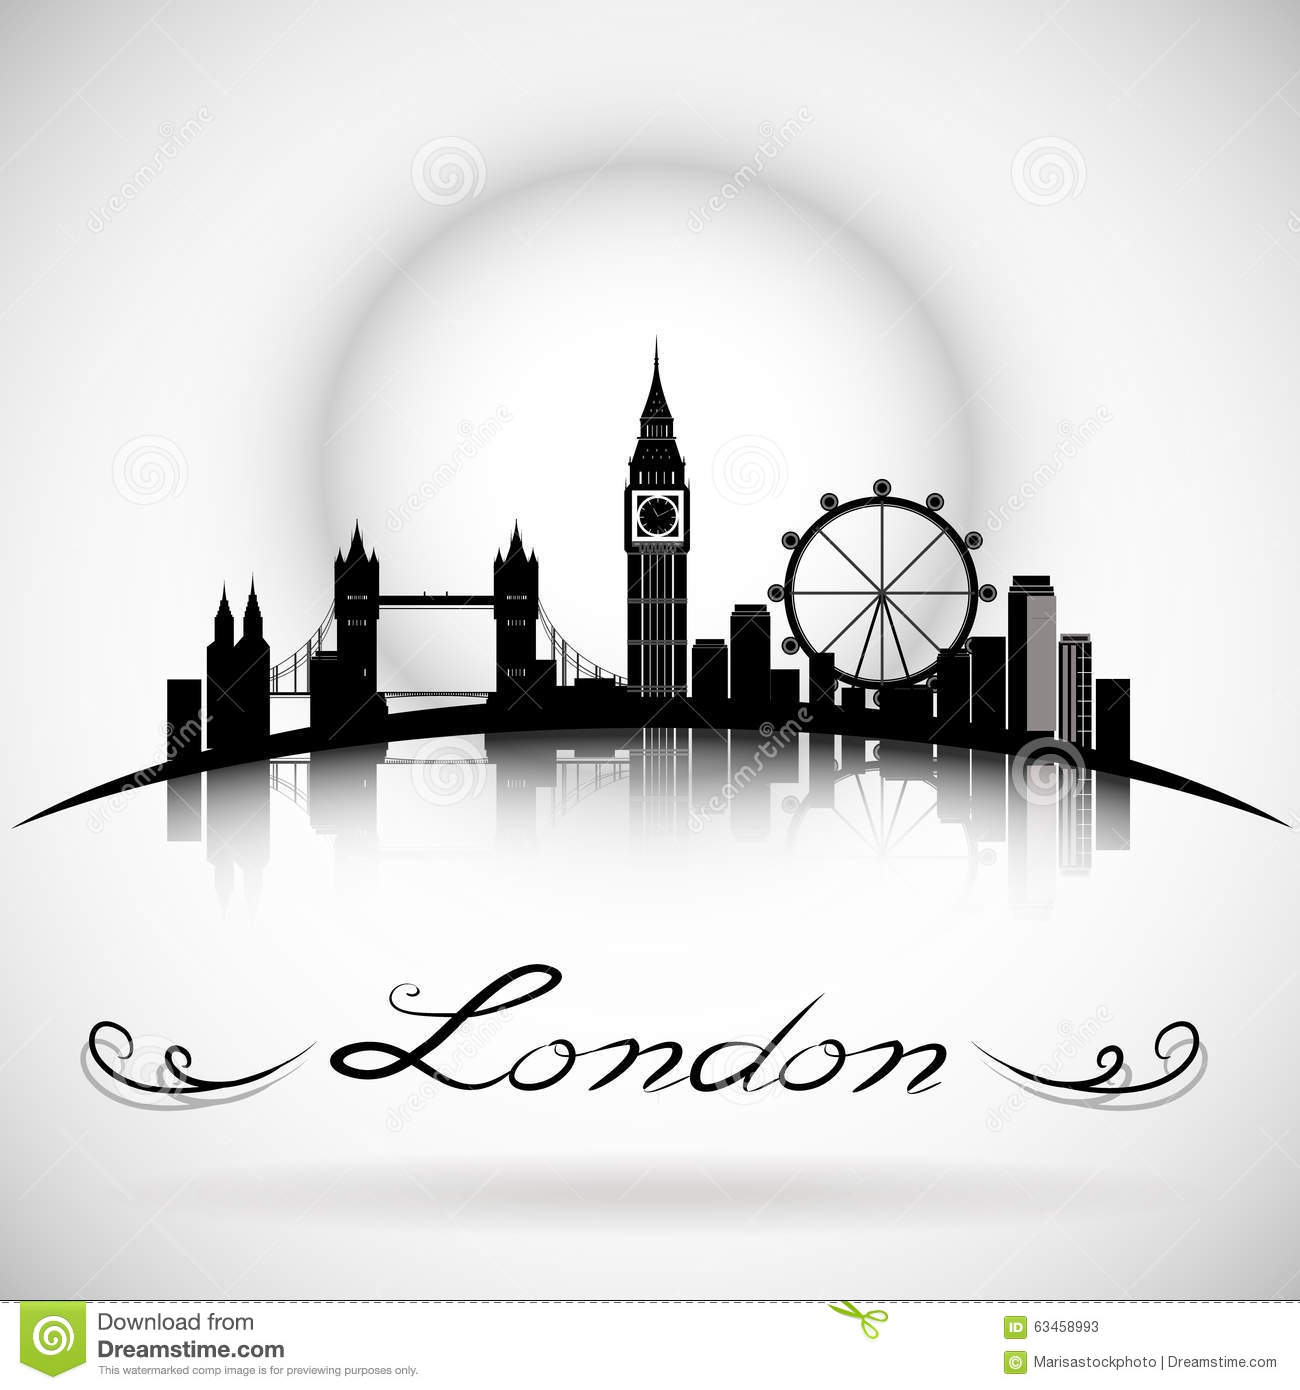 London City skyline silhouette background with Typographic Design. eps10 vector